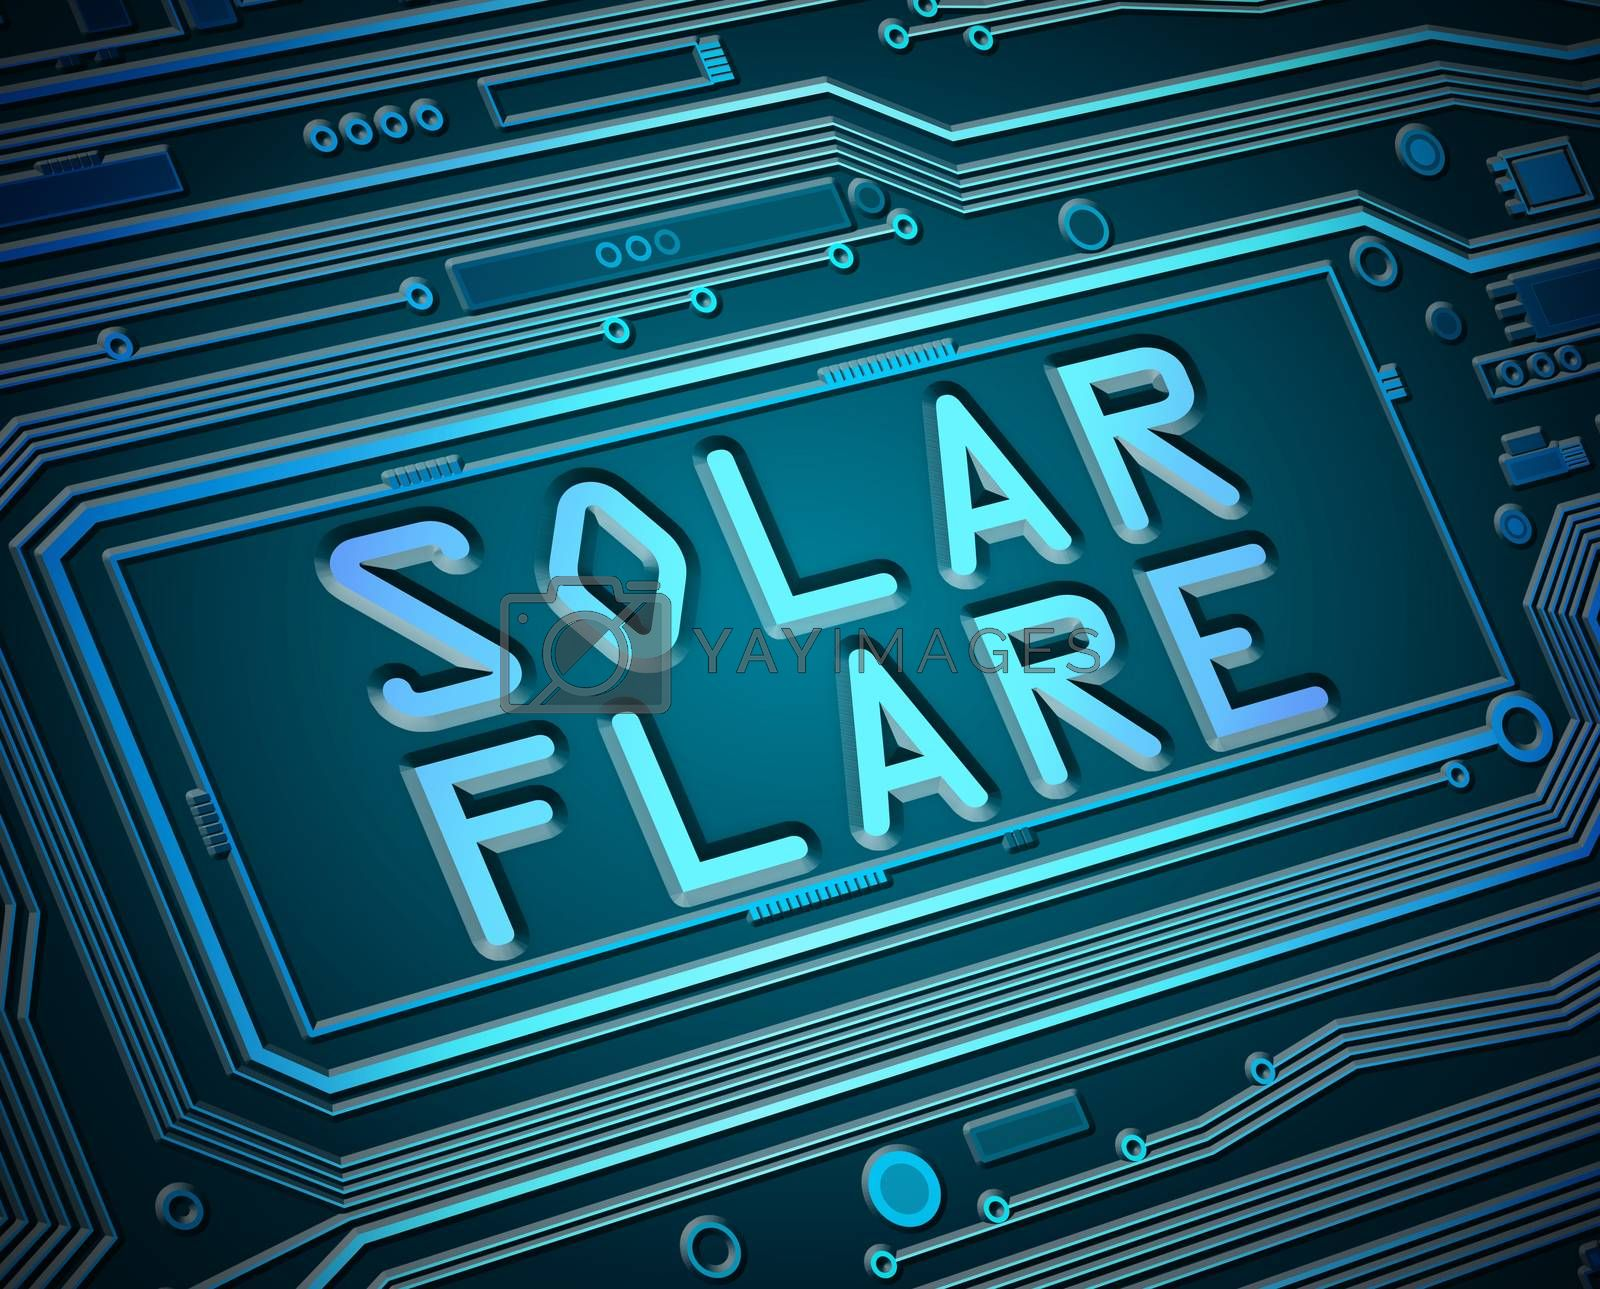 Abstract style illustration depicting printed circuit board components with a solar flare concept.